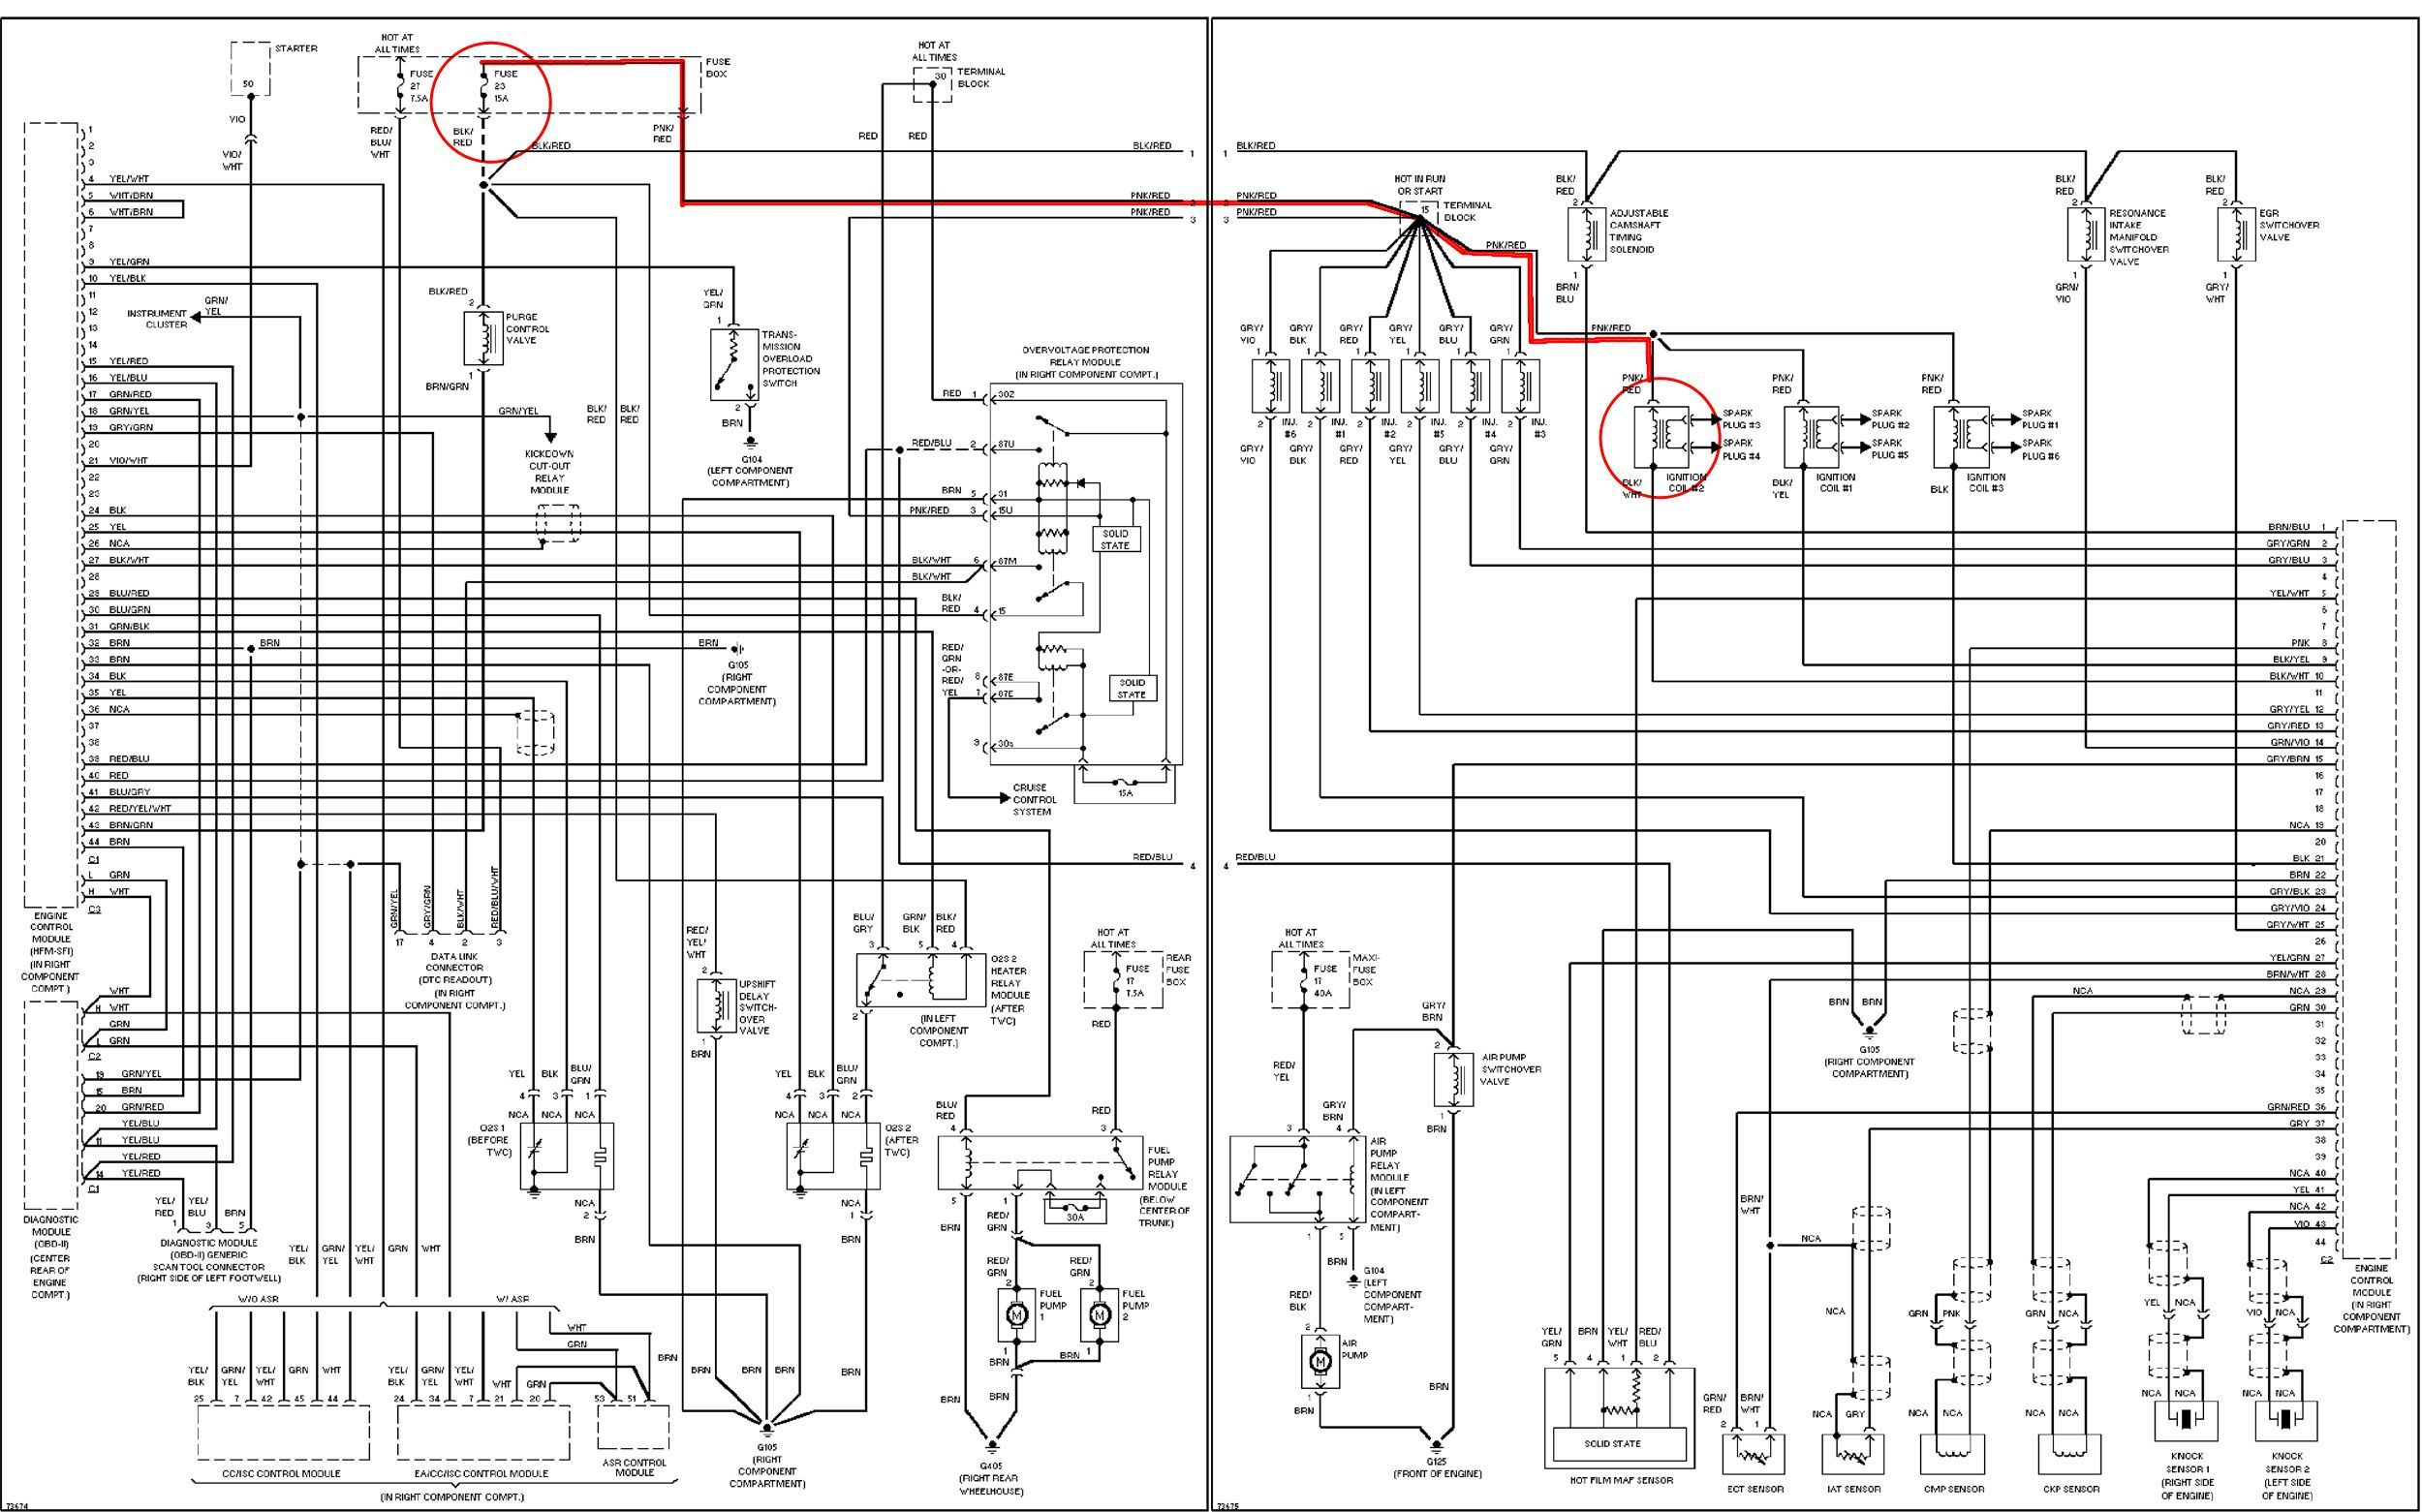 medium resolution of mercedes wiring diagram trusted wiring diagram rh 20 nl schoenheitsbrieftaube de mercedes w211 headlight wiring diagram